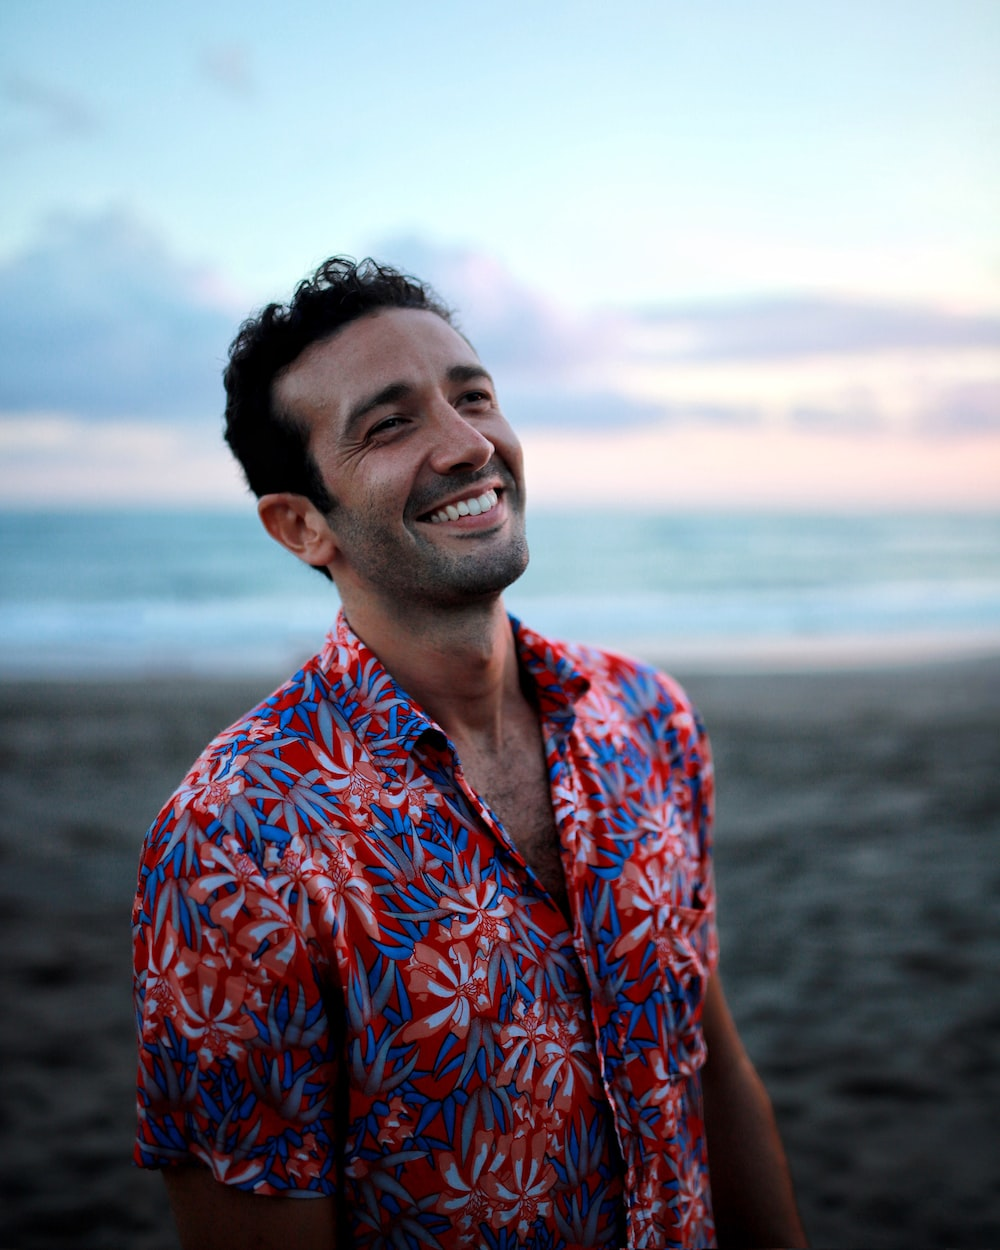 man in blue and orange button up shirt smiling